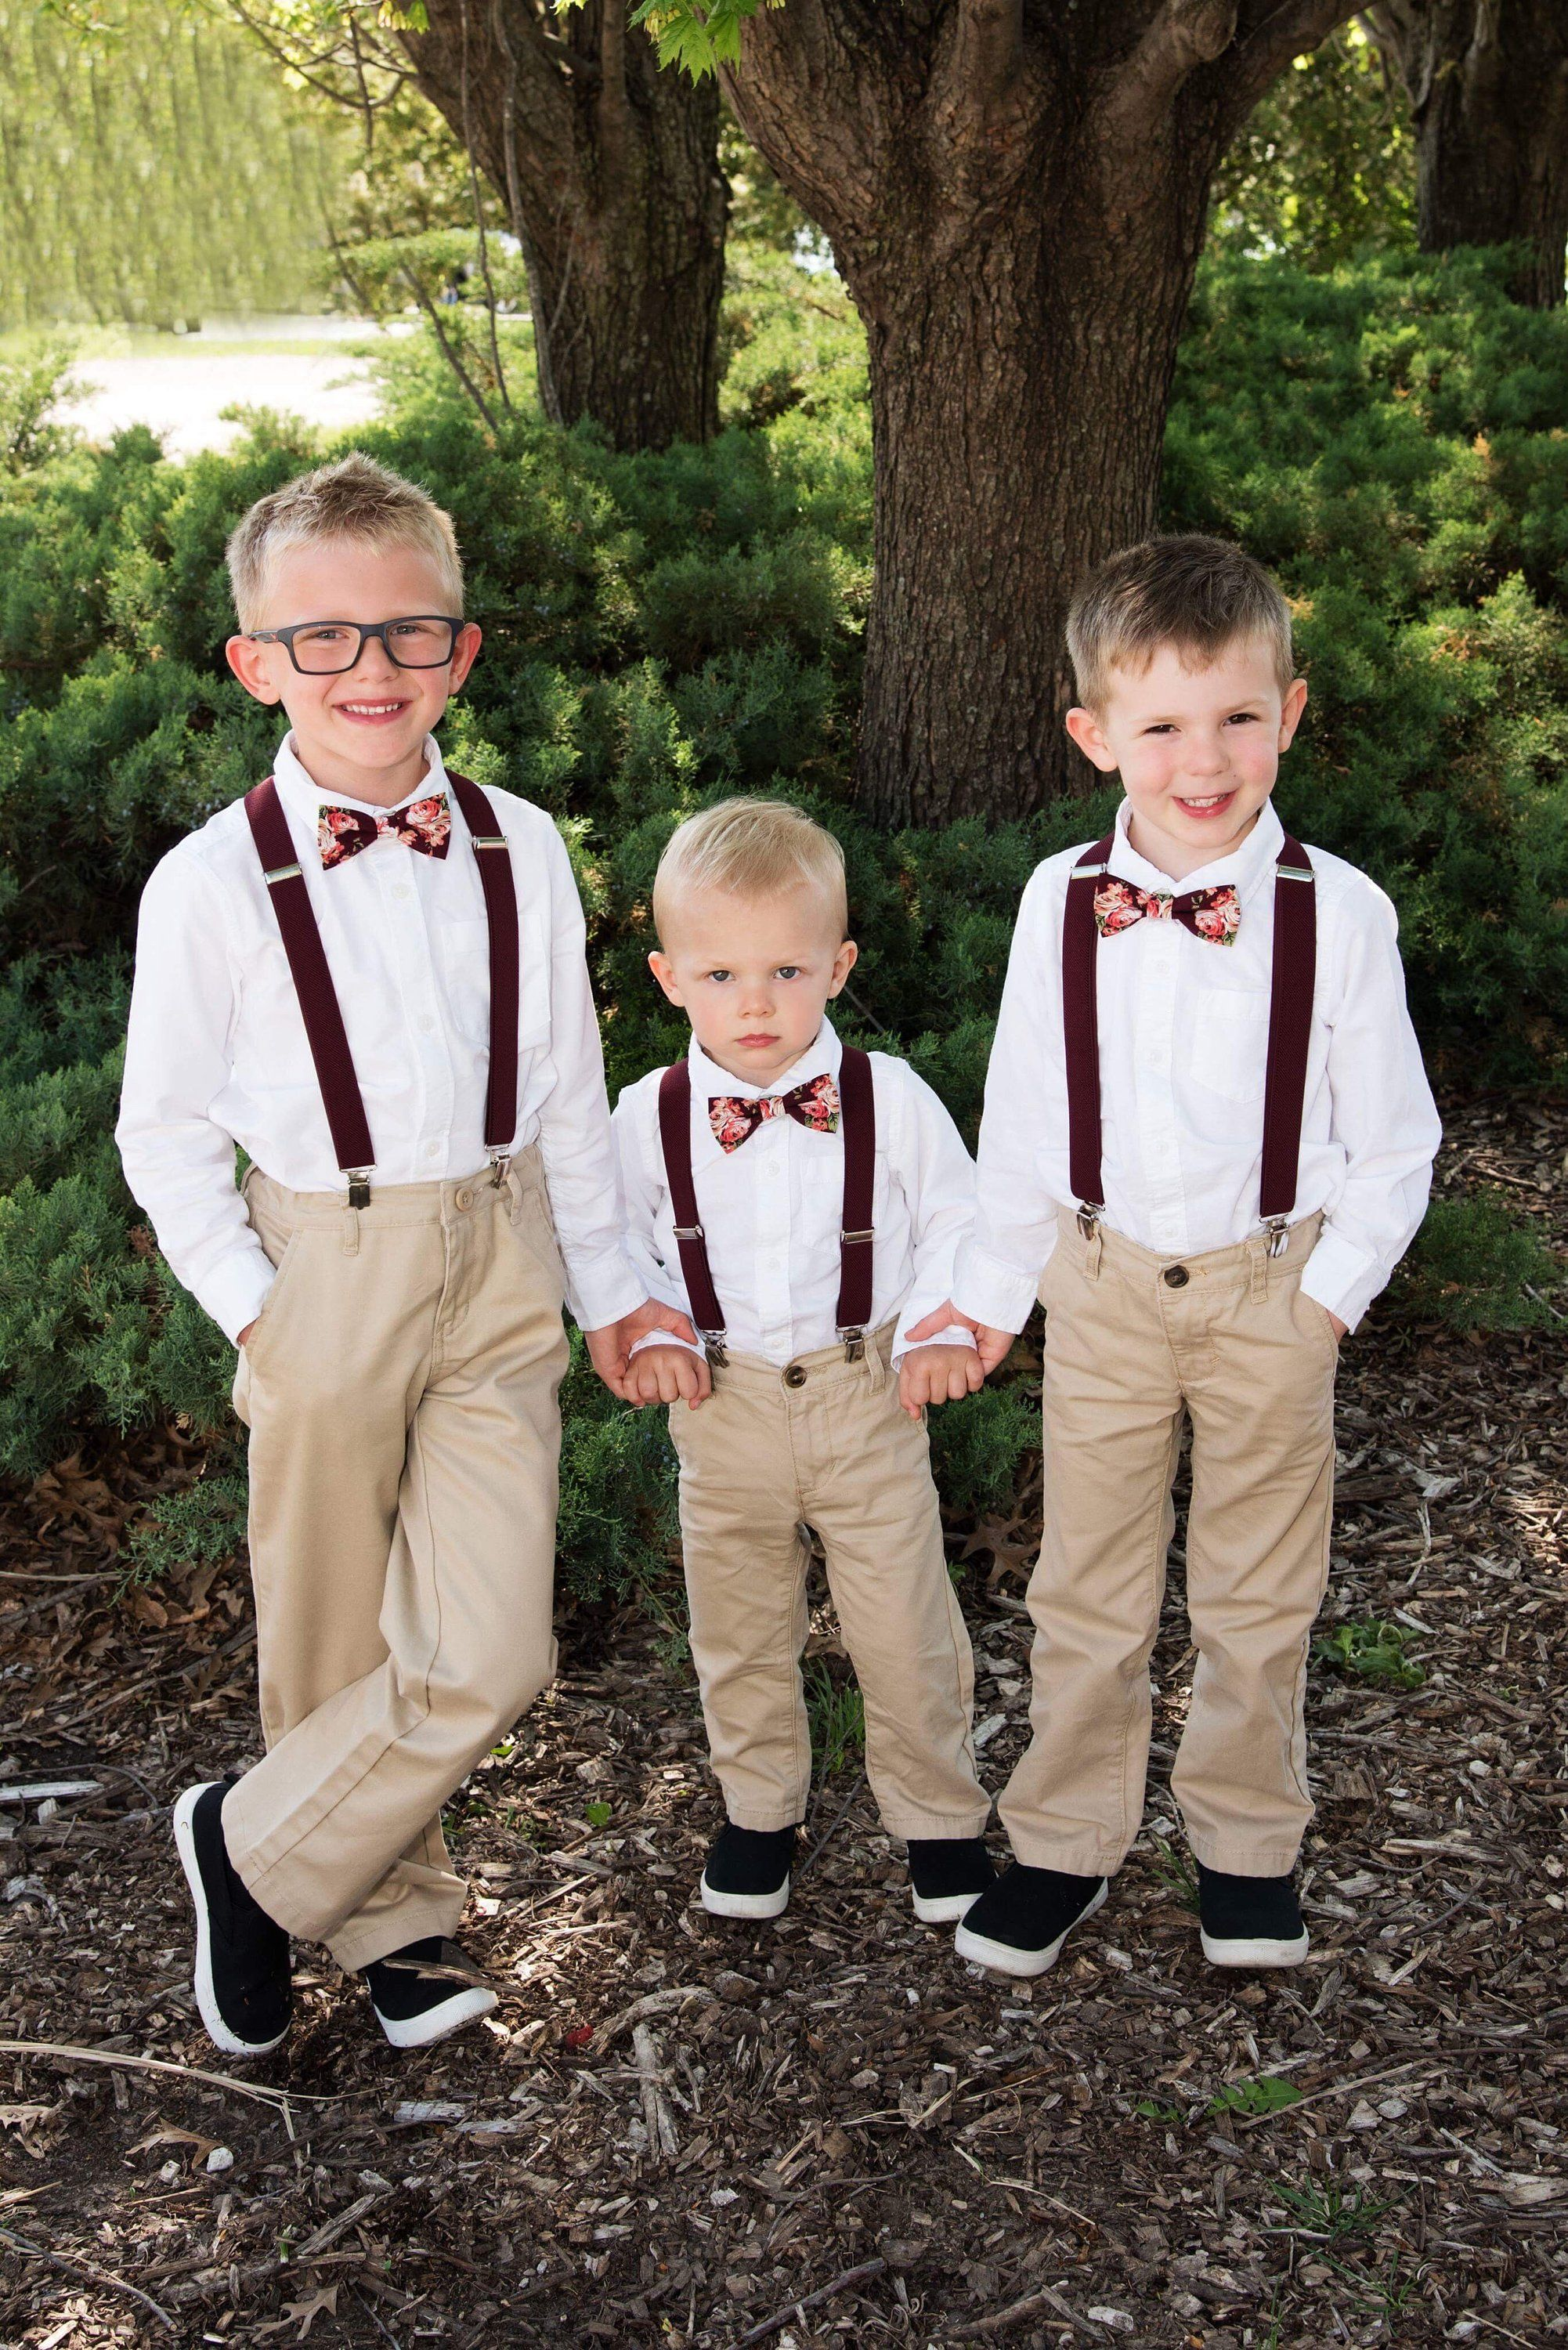 Ring Bearers Bow Ties And Suspenders For Burgundy Wedding Etsy In 2020 Wedding Outfits For Groom Wedding Outfit For Boys Fall Groomsmen Attire